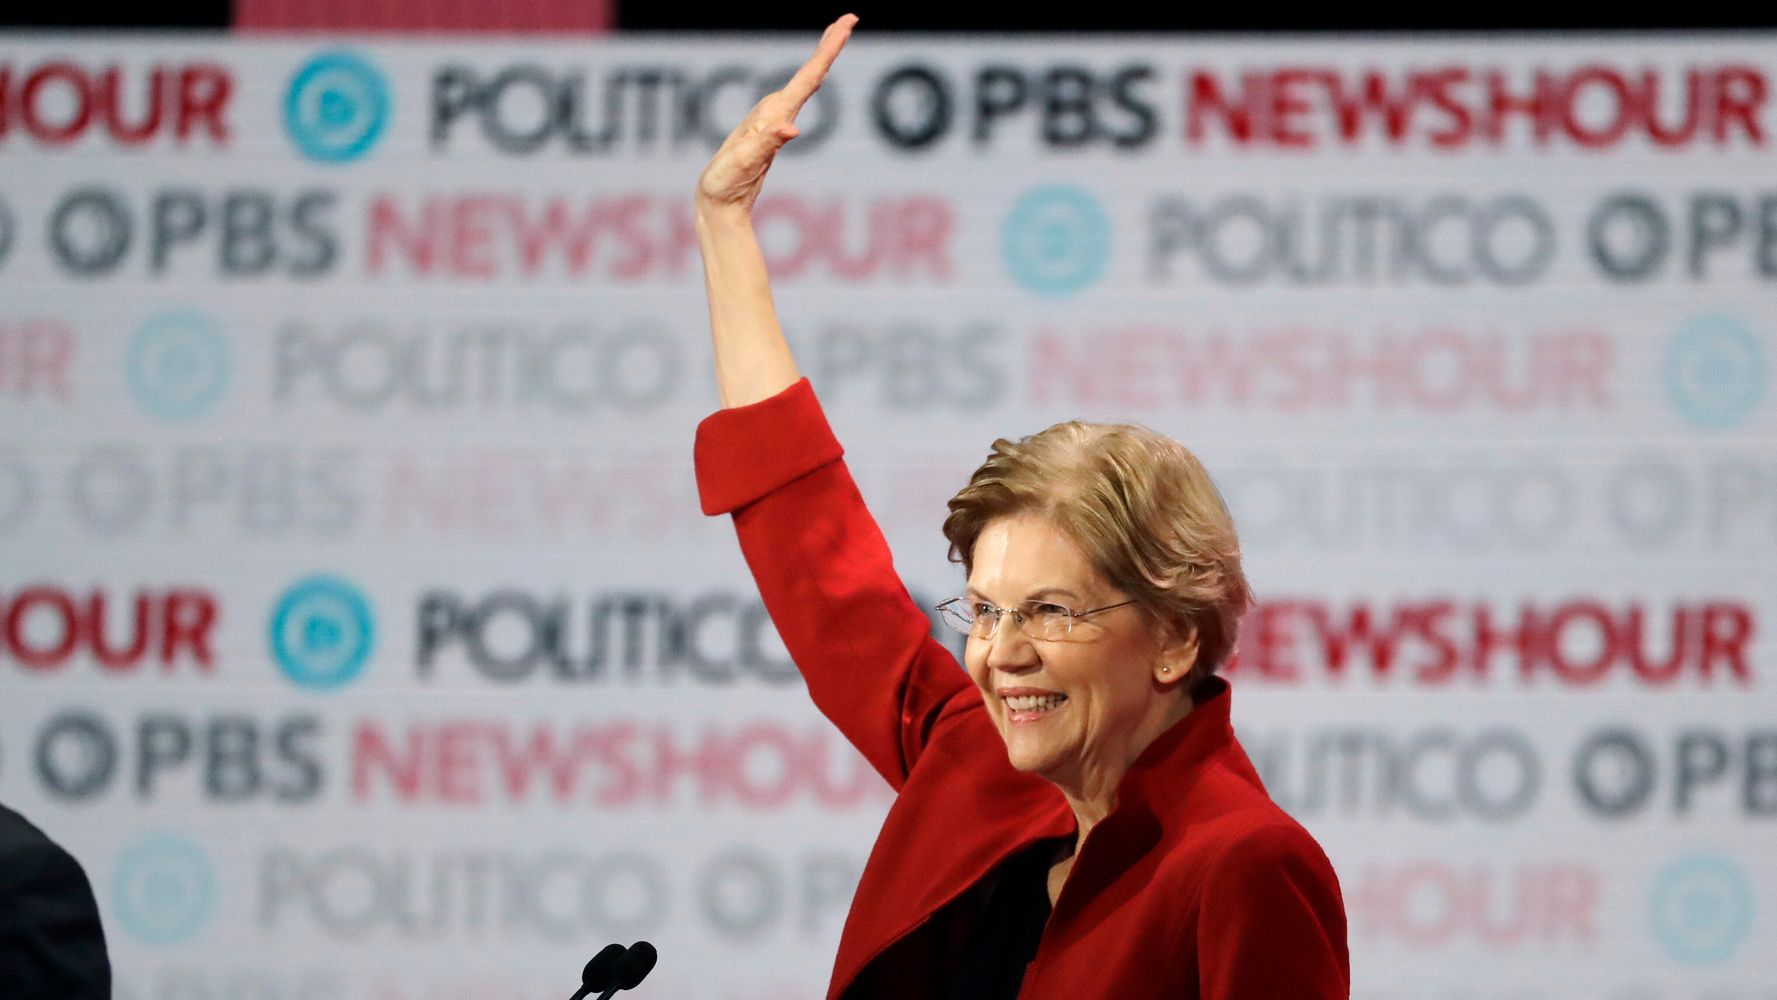 'I'd Also Be The Youngest Woman': Warren Fires Back At Debate Question About Age